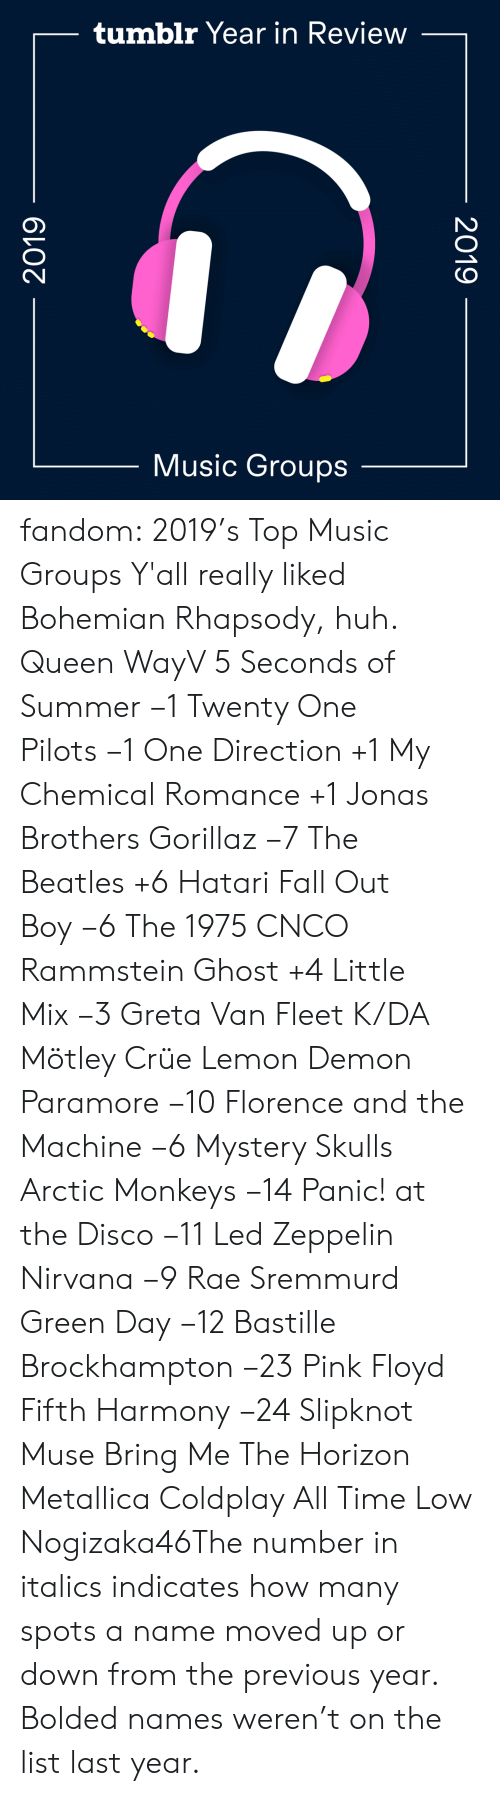 Pink: tumblr Year in Review  Music Groups  2019  2019 fandom:  2019's Top Music Groups  Y'all really liked Bohemian Rhapsody, huh.  Queen  WayV  5 Seconds of Summer −1  Twenty One Pilots −1  One Direction +1  My Chemical Romance +1  Jonas Brothers  Gorillaz −7  The Beatles +6  Hatari  Fall Out Boy −6  The 1975  CNCO  Rammstein  Ghost +4  Little Mix −3  Greta Van Fleet  K/DA  Mötley Crüe  Lemon Demon  Paramore −10  Florence and the Machine −6  Mystery Skulls  Arctic Monkeys −14  Panic! at the Disco −11  Led Zeppelin   Nirvana −9  Rae Sremmurd  Green Day −12  Bastille  Brockhampton −23  Pink Floyd  Fifth Harmony −24  Slipknot  Muse  Bring Me The Horizon  Metallica  Coldplay  All Time Low  Nogizaka46The number in italics indicates how many spots a name moved up or down from the previous year. Bolded names weren't on the list last year.